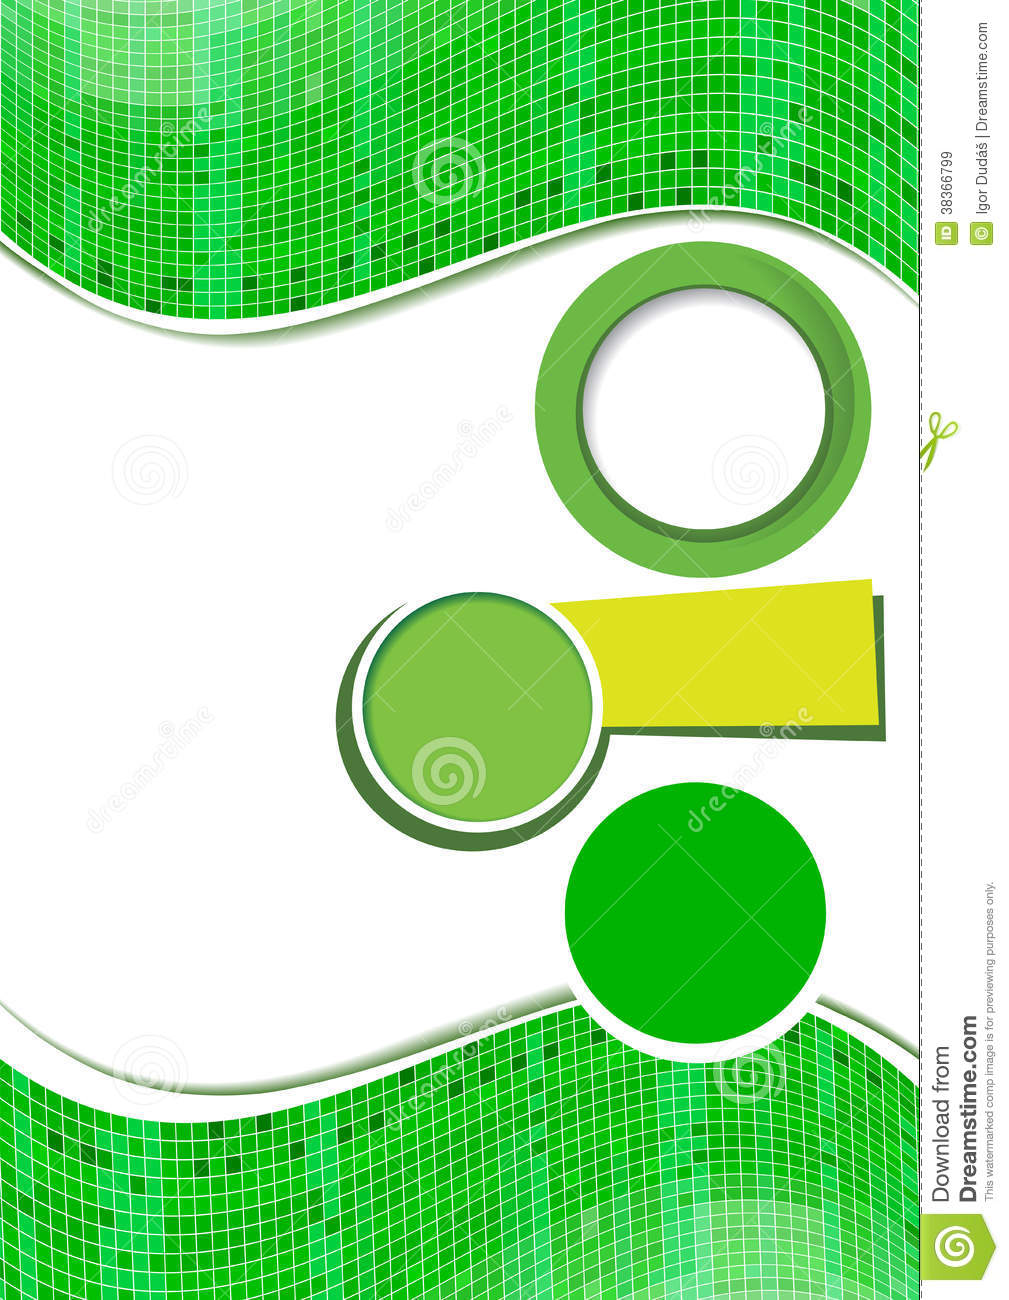 abstract green background design stock vector - illustration of